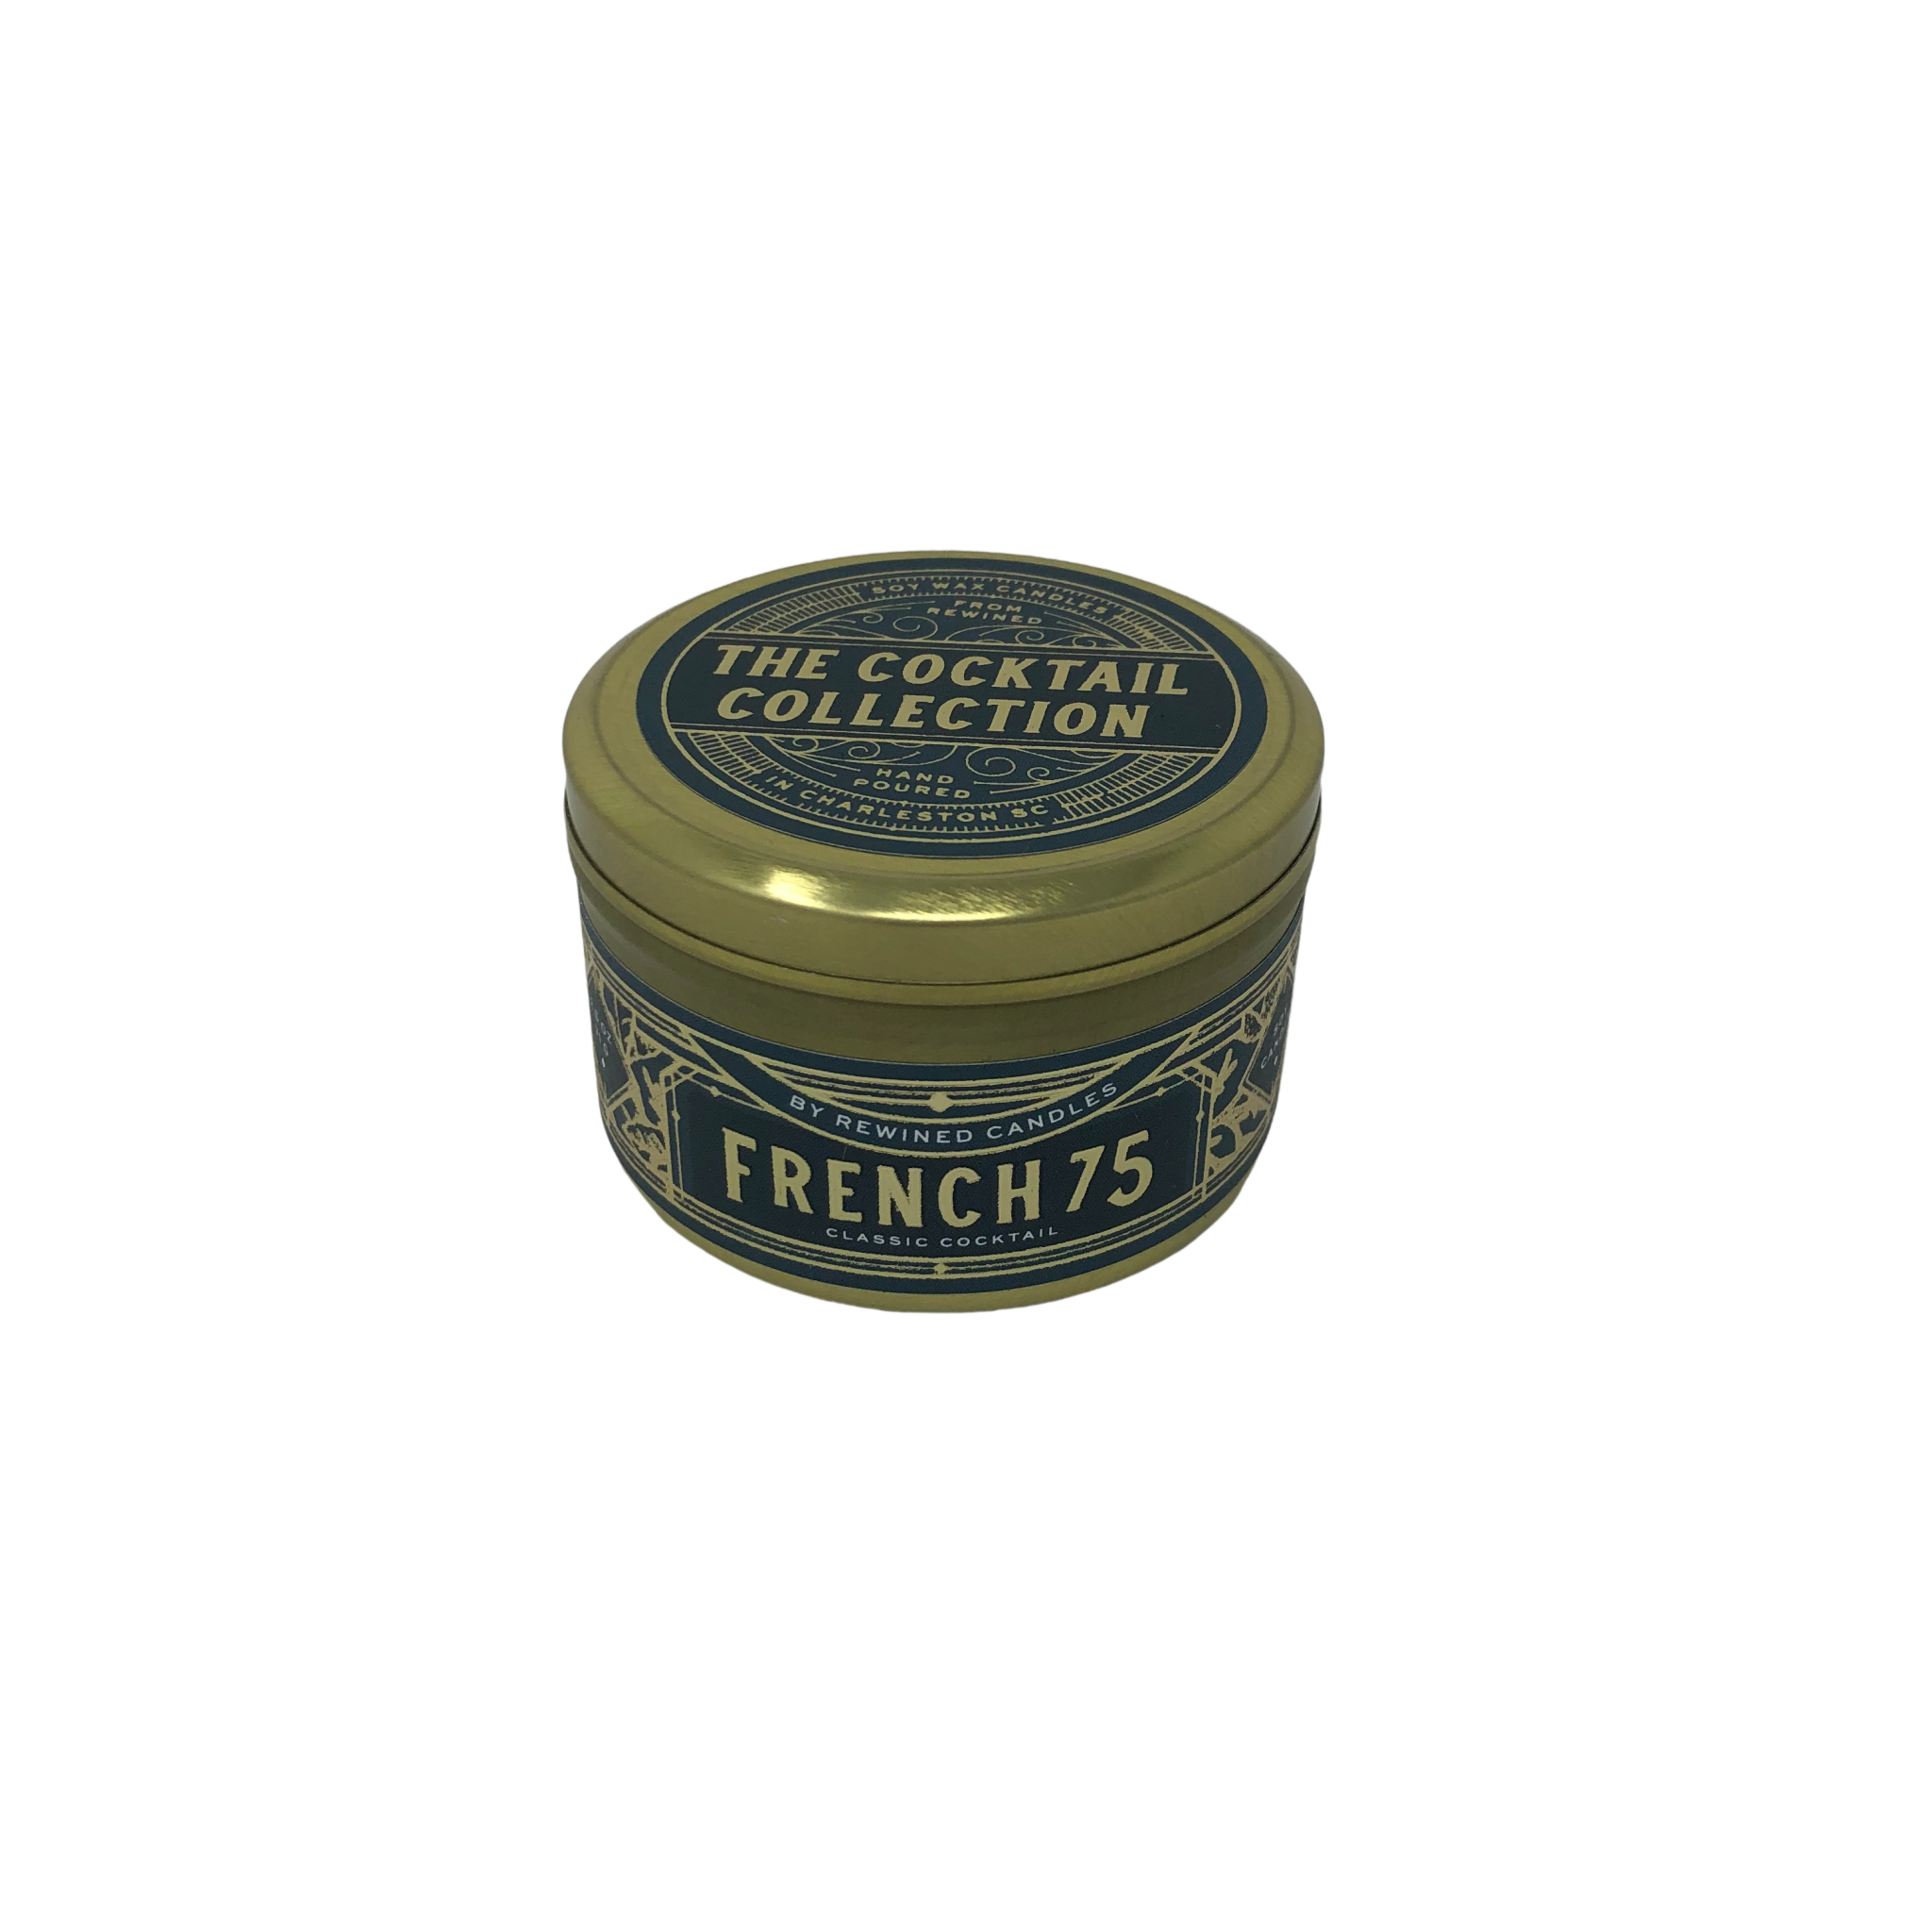 Rewined French 75 Travel Tin Candle